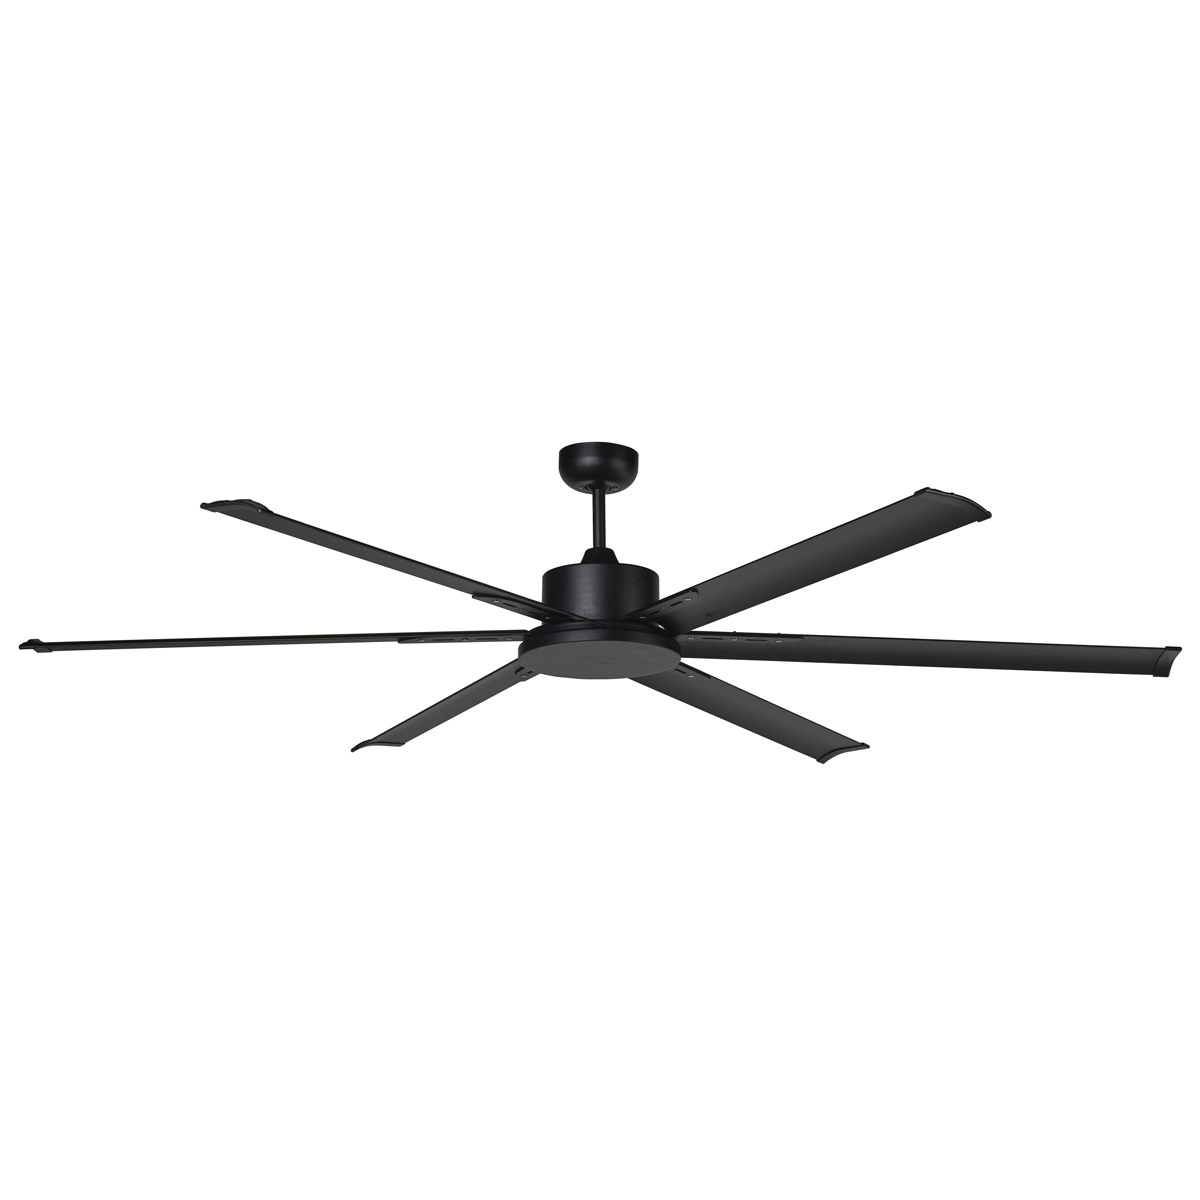 Ceiling fan clipart sounds in motion png black and white download Ceiling Fans Noise – Lamps png black and white download